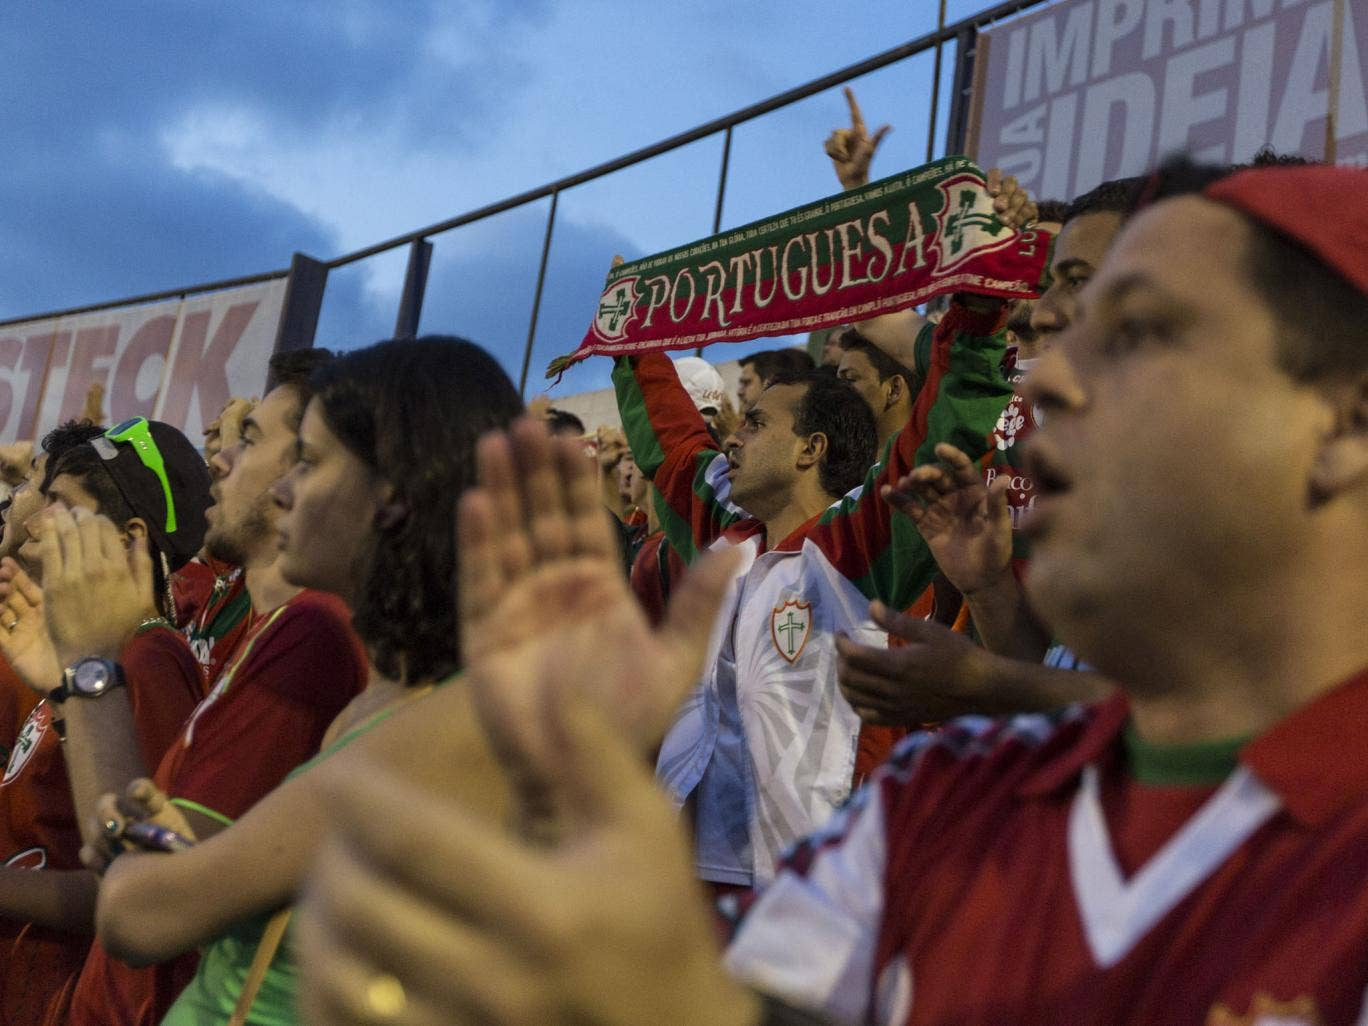 Sao Paulo's Candide Stadium fills up with Portuguese soccer supporters